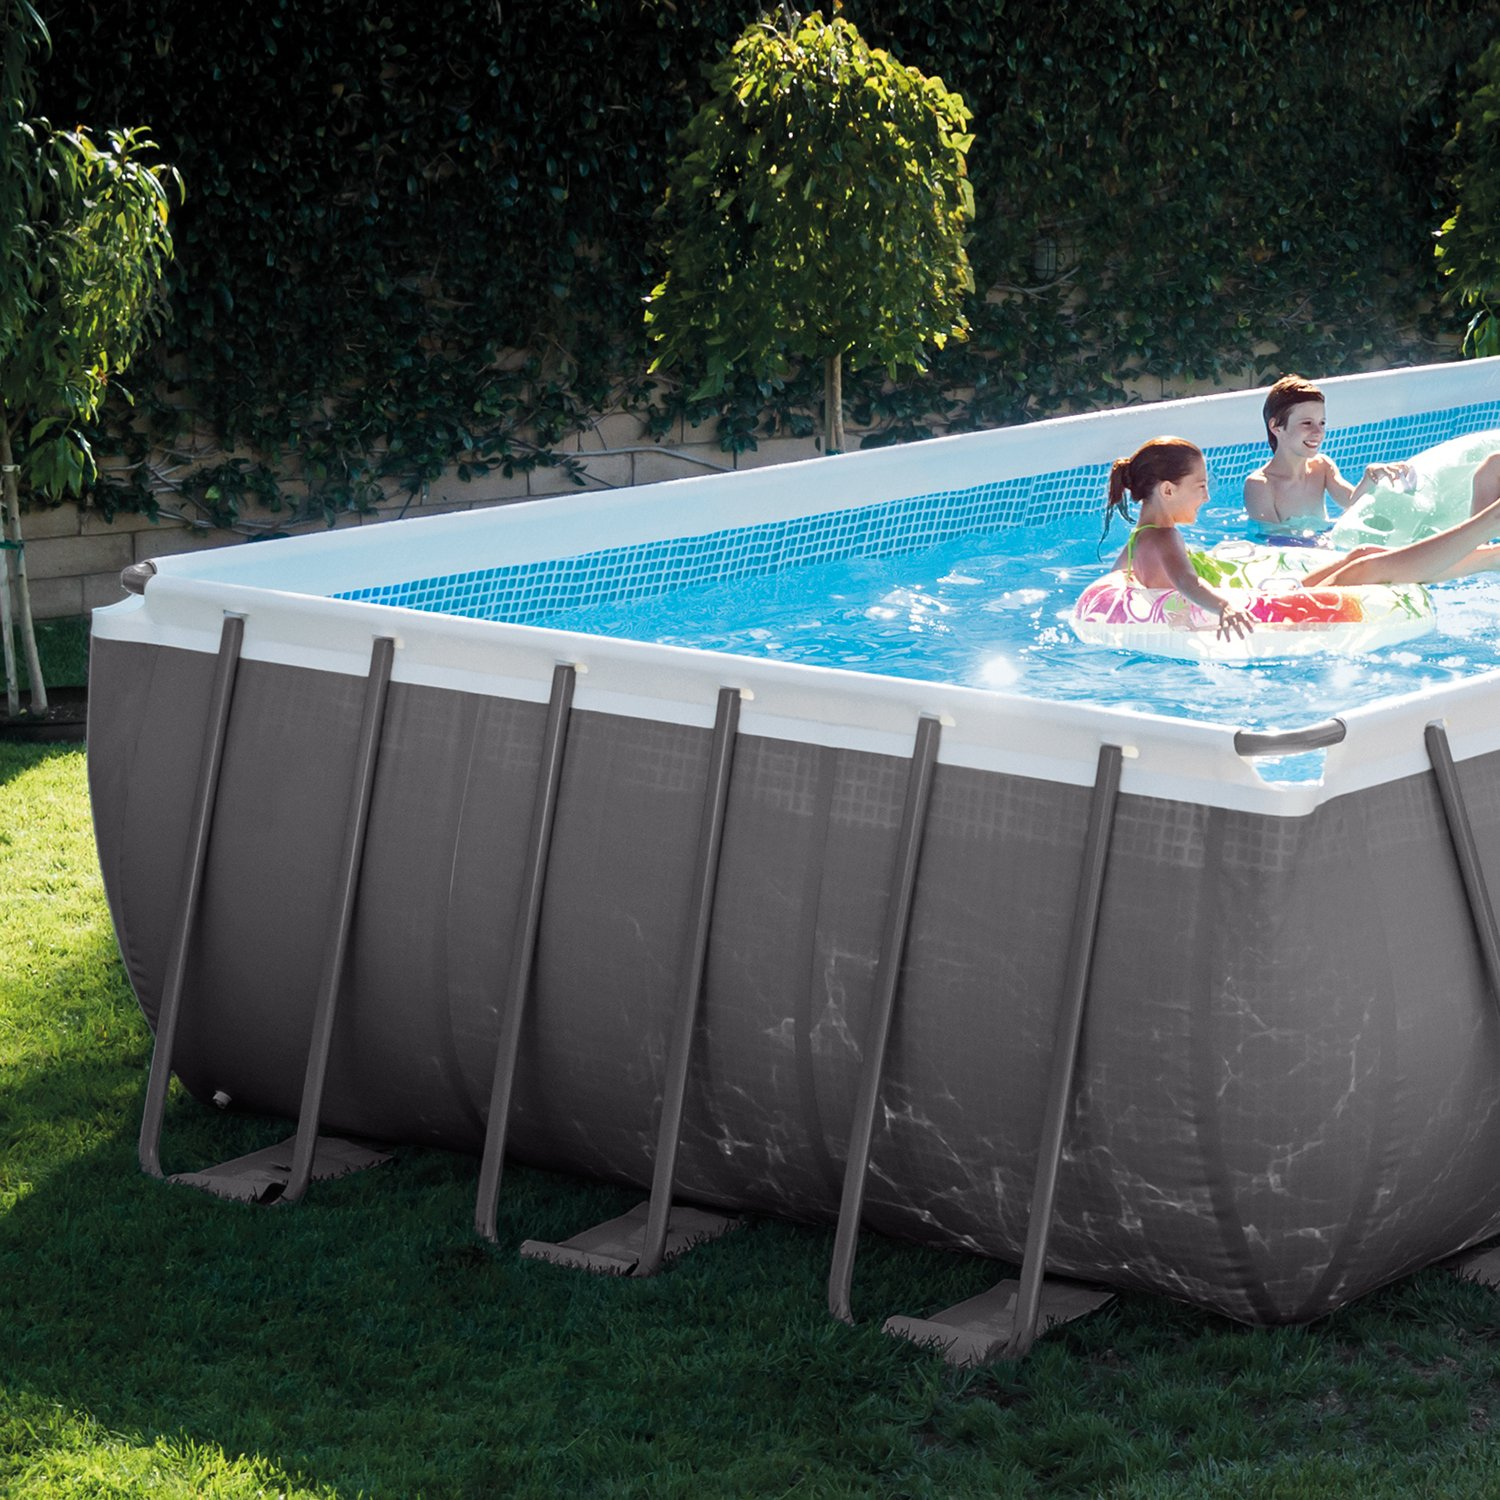 Amazon.com : Intex Rectangular Ultra Frame Pool Set, 24-Feet by 12 ...